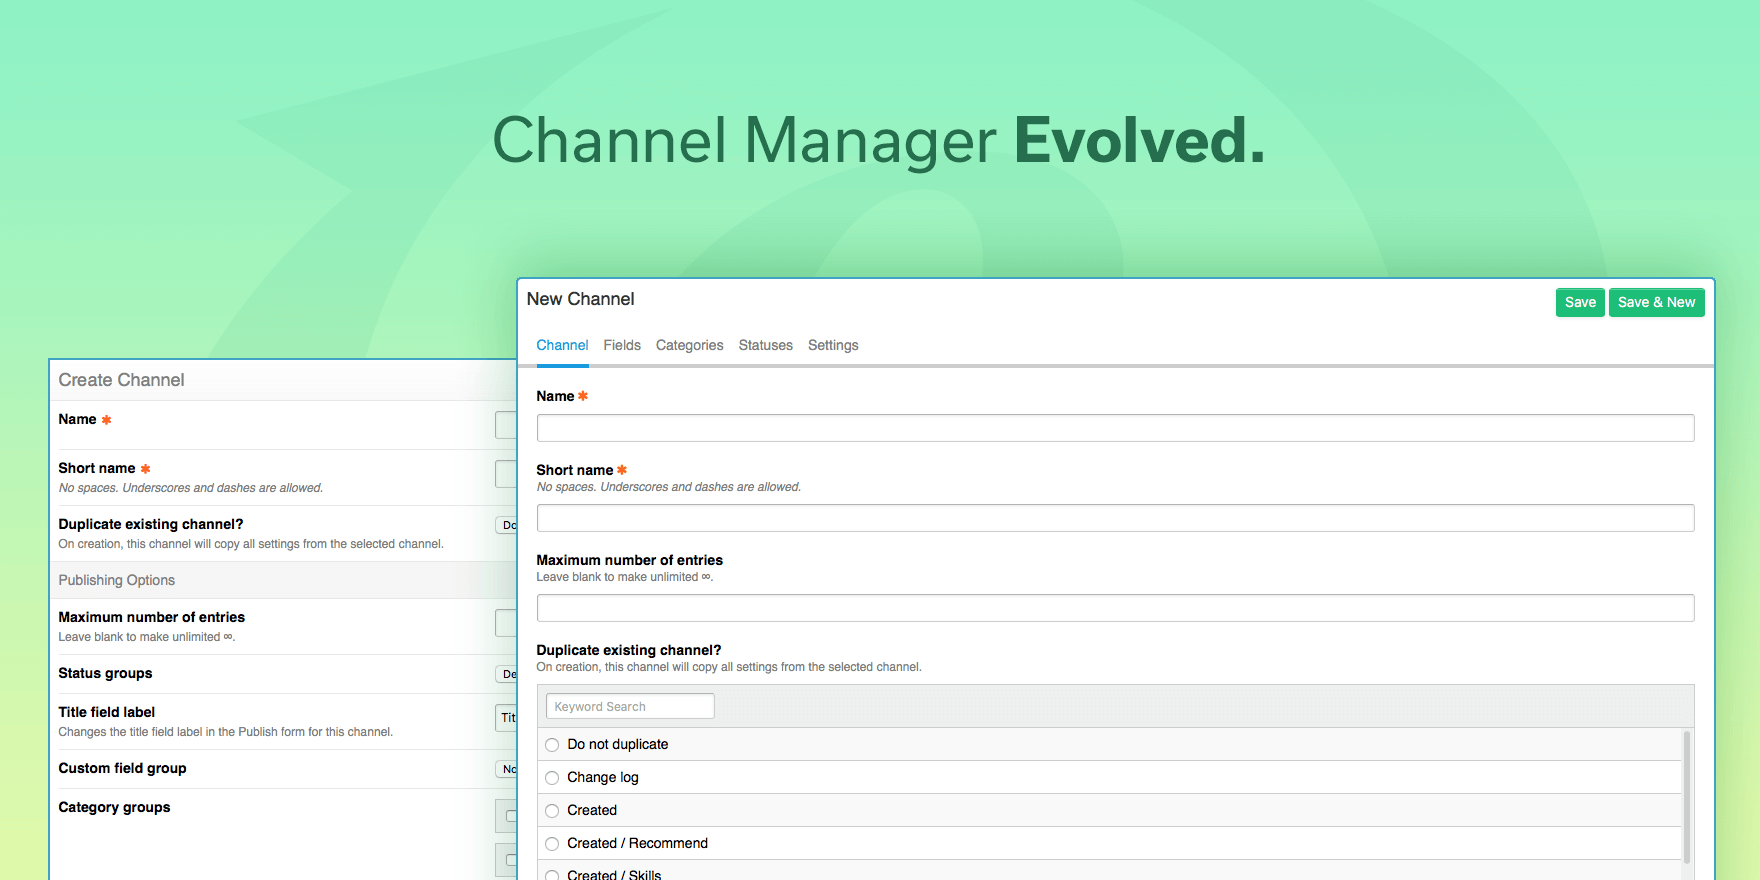 Channel Manager Evolved